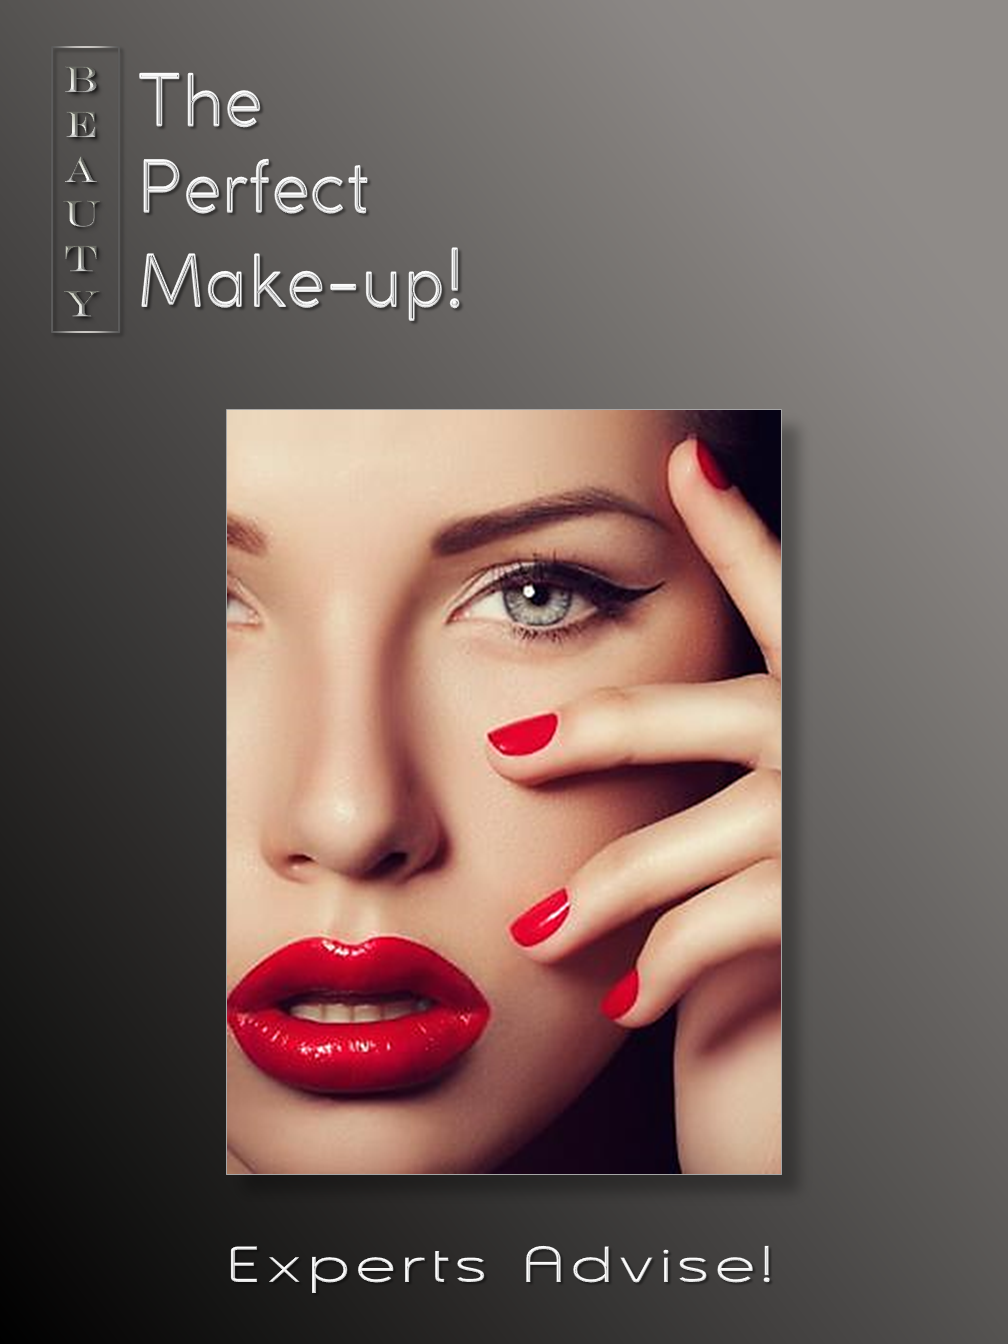 The Perfect Make-up